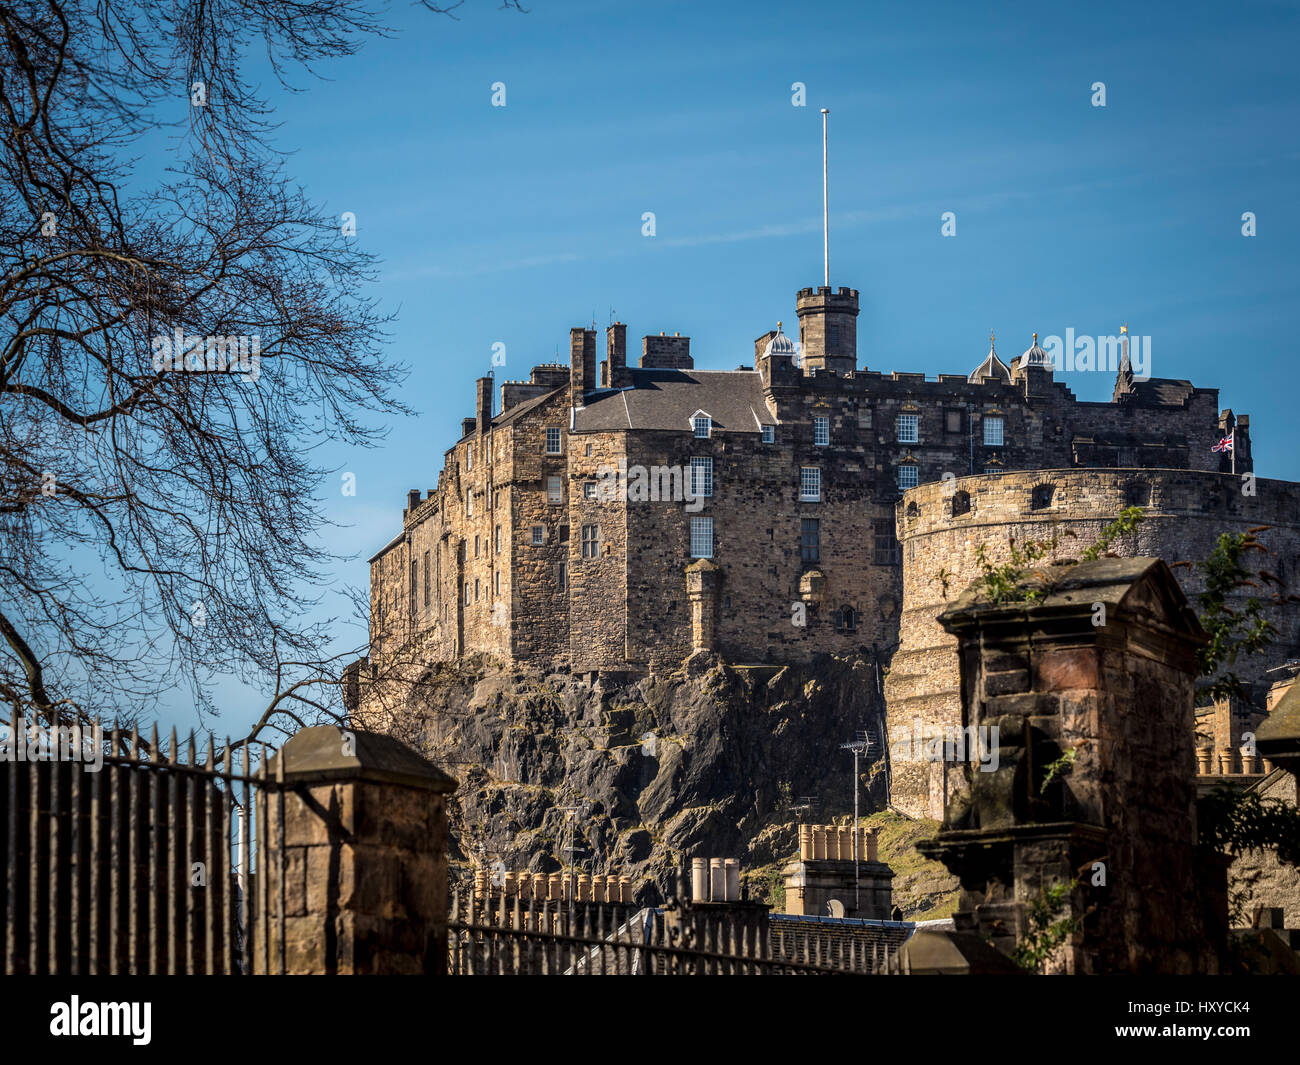 View from Greyfriars Kirkyard of Edinburgh Castle, Edinburgh, Scotland, UK. Stock Photo